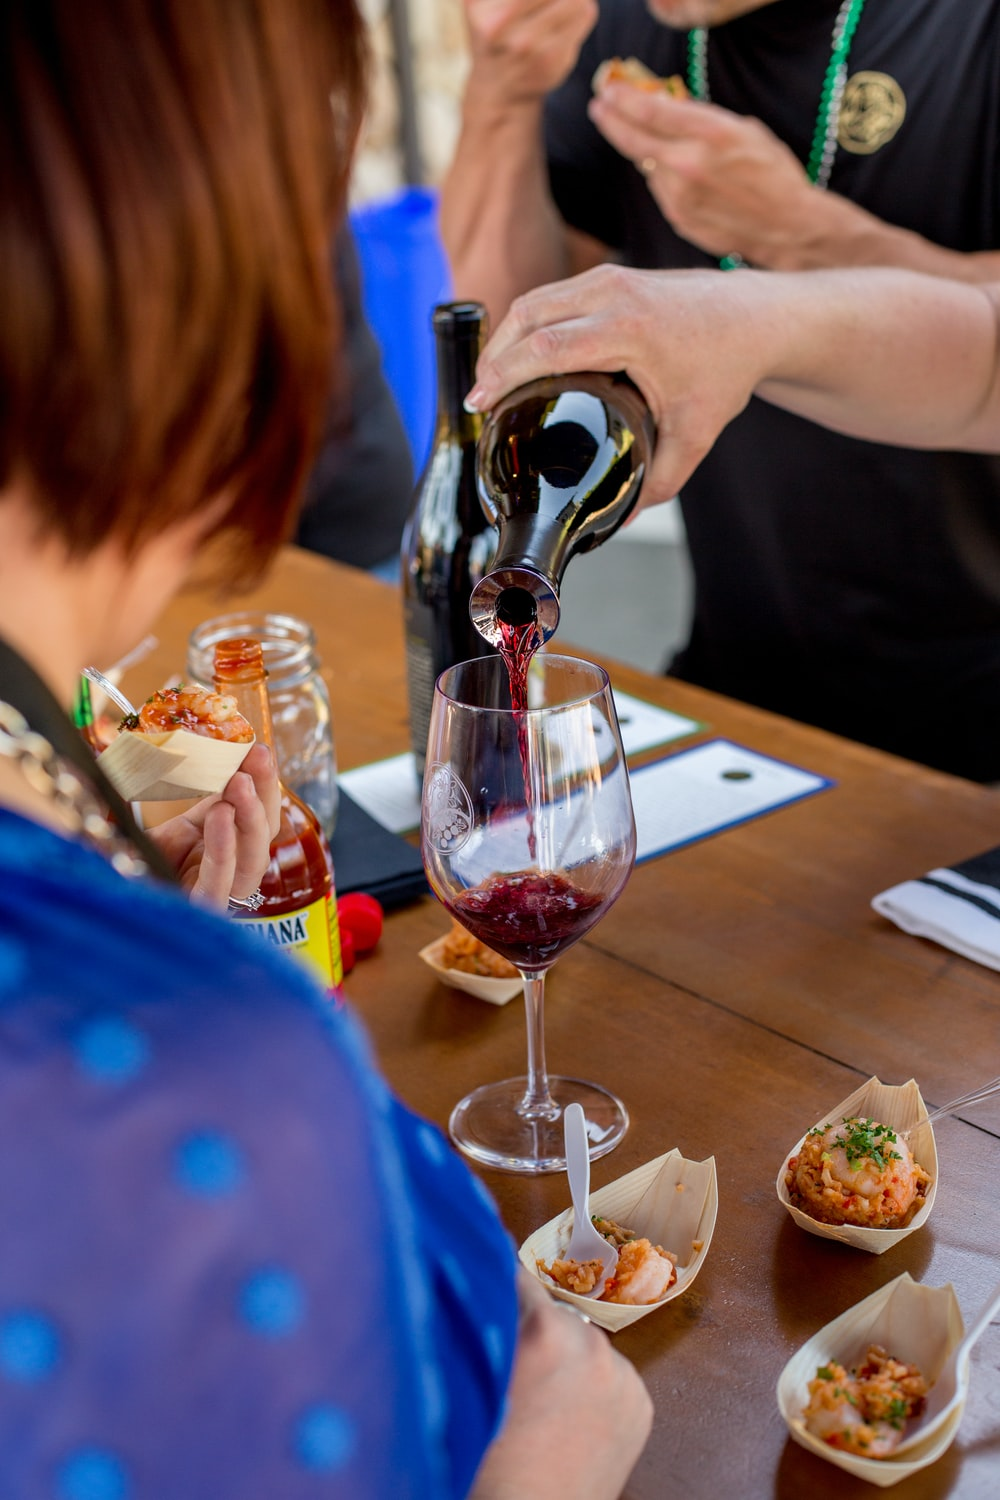 person pouring wine on glass in front of woman in blue top